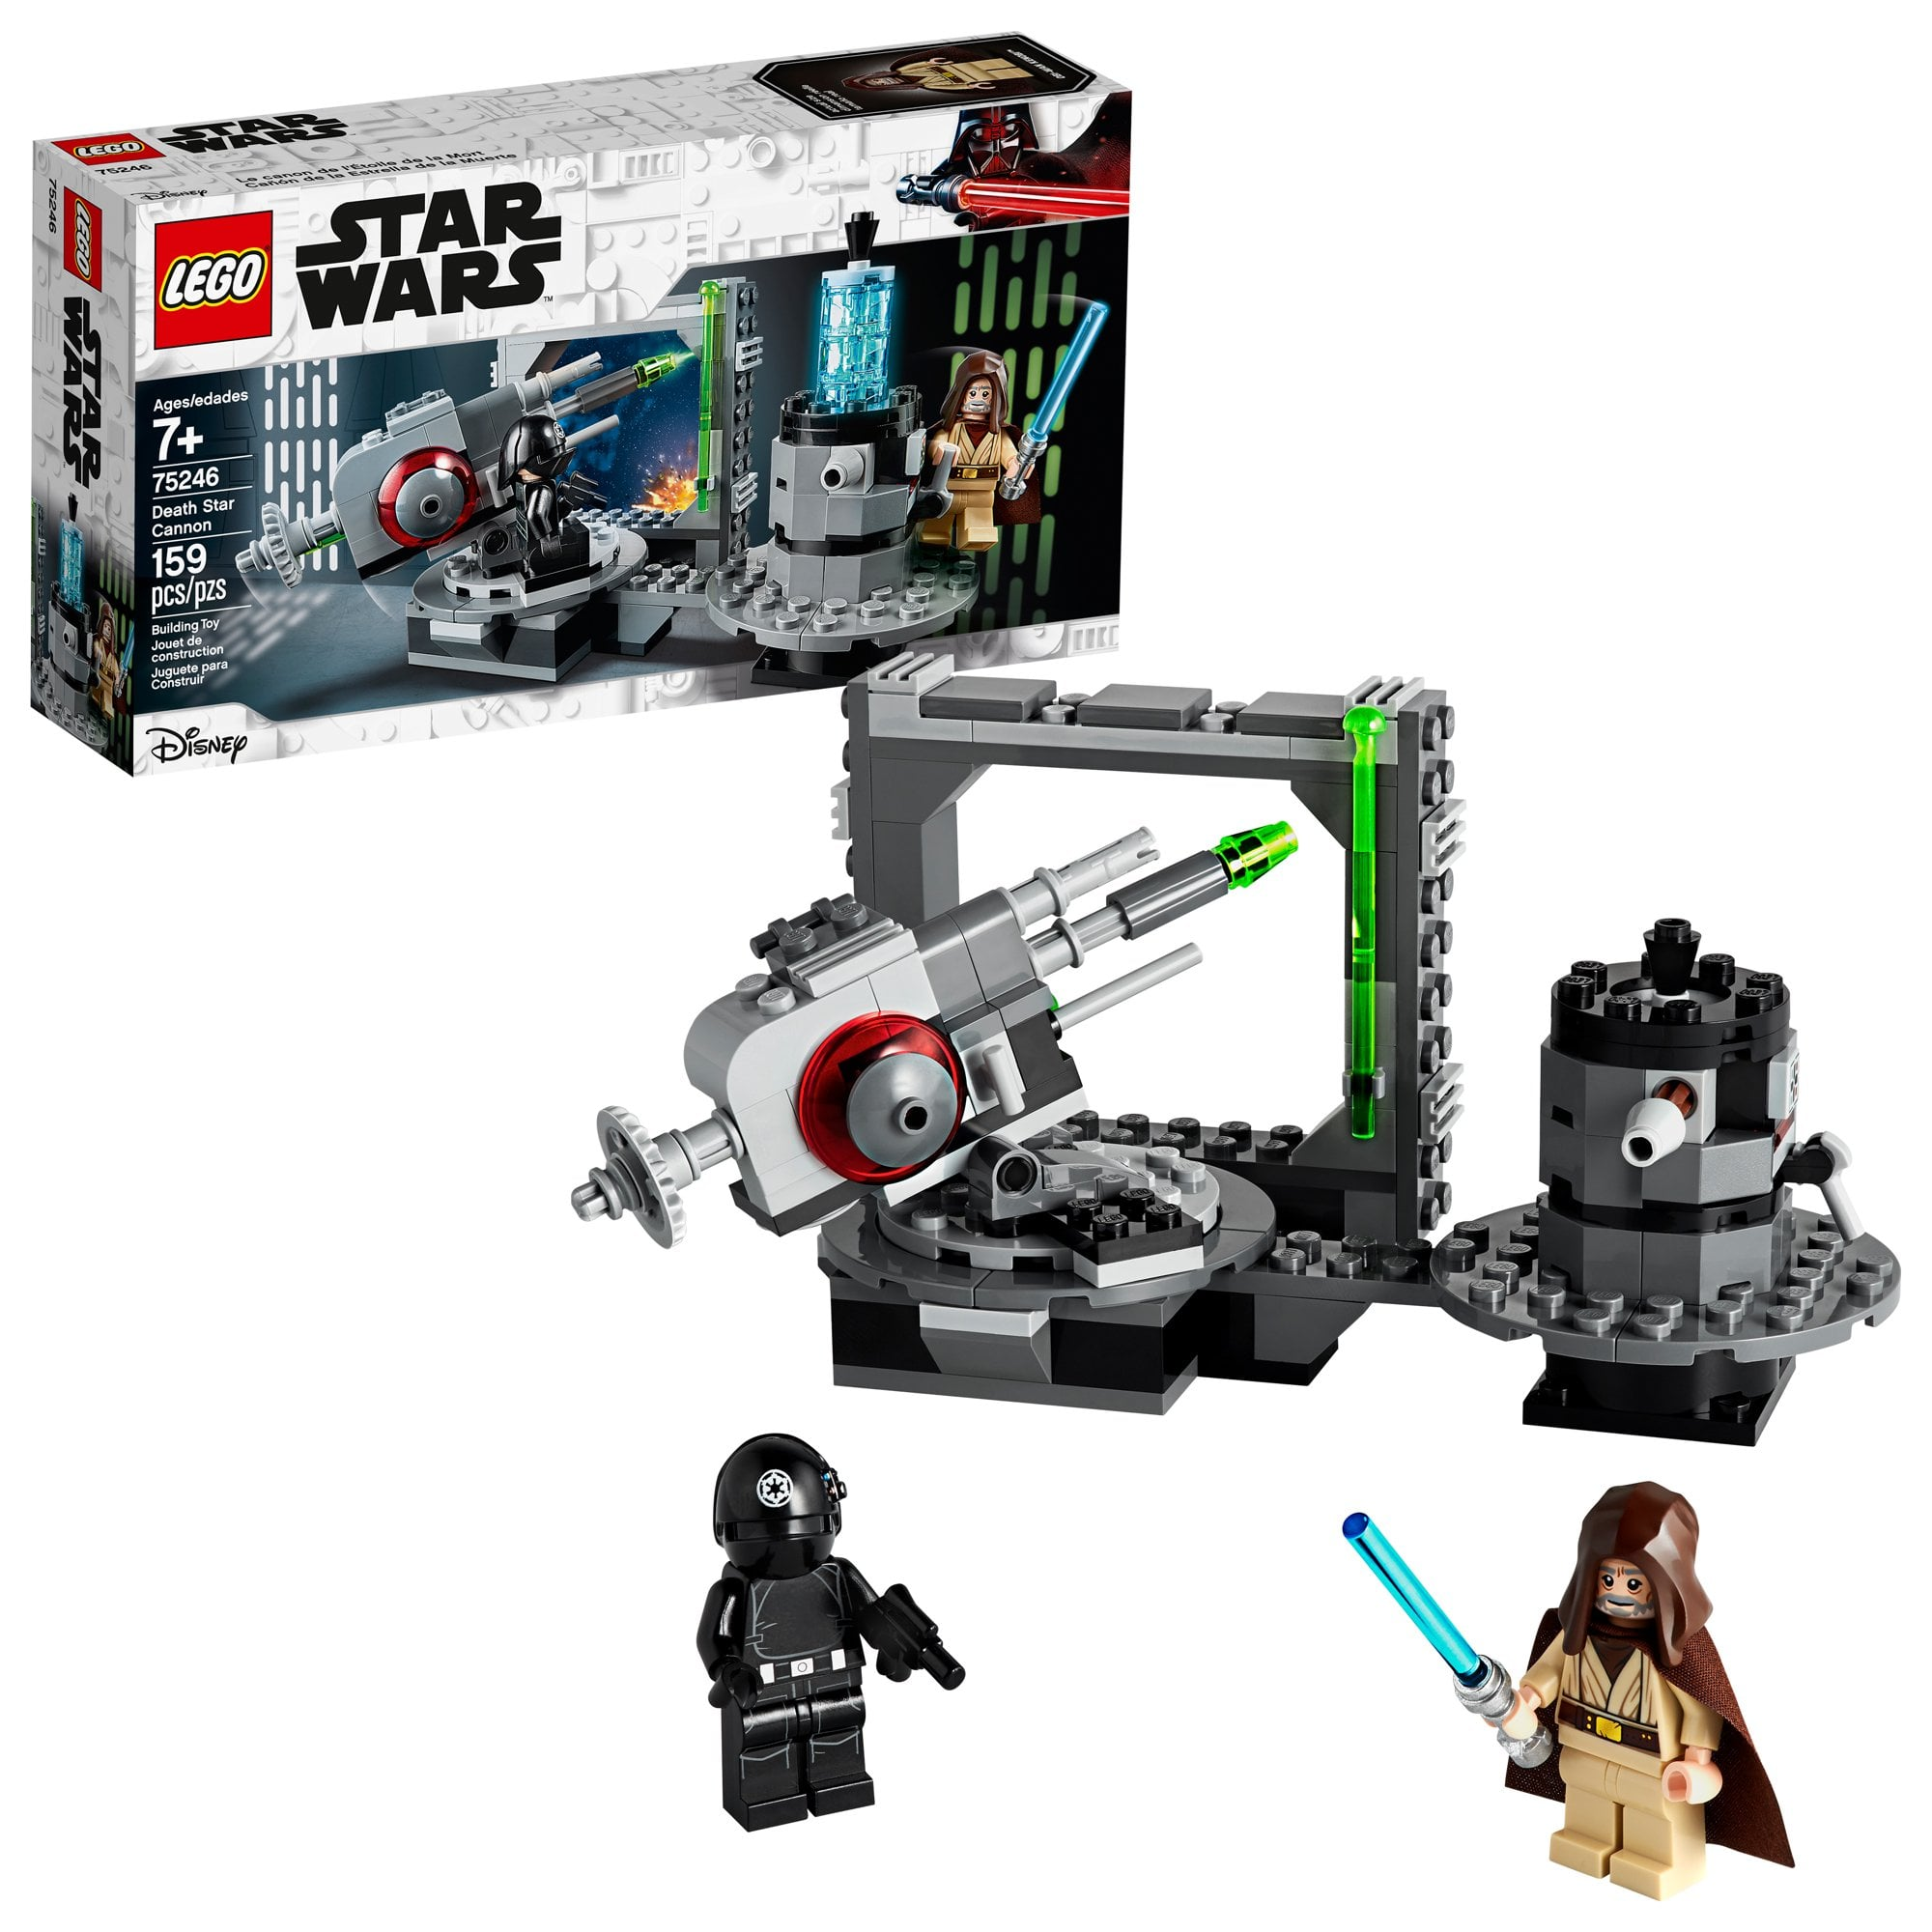 New Star Wars Lego Sets For Triple Force Friday 2019 Popsugar Family